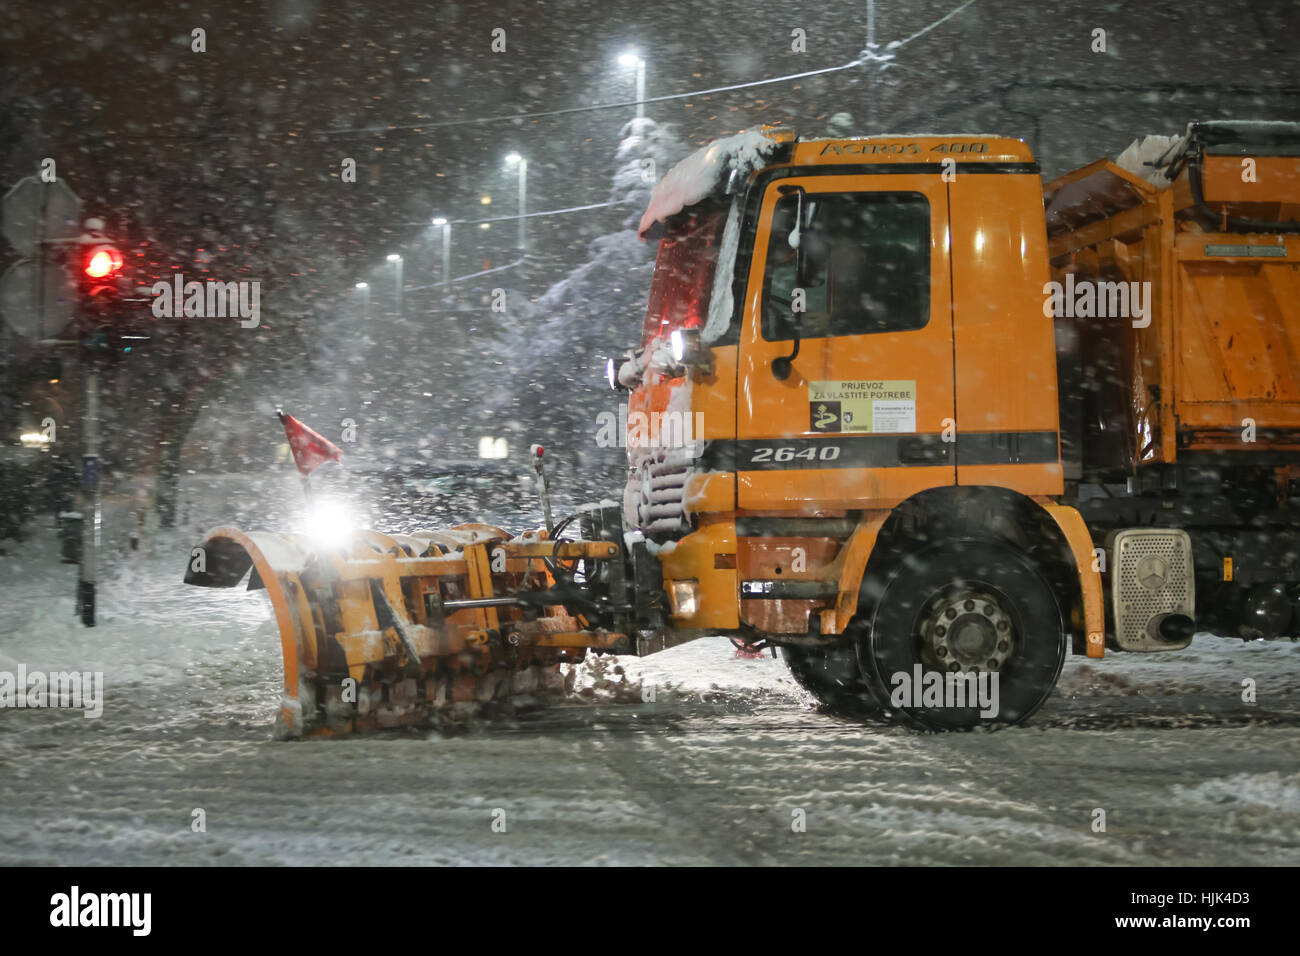 VELIKA GORICA, CROATIA - JANUARY 13th, 2017 : Snowplow cleaning streets in the aggravated traffic due to strong - Stock Image